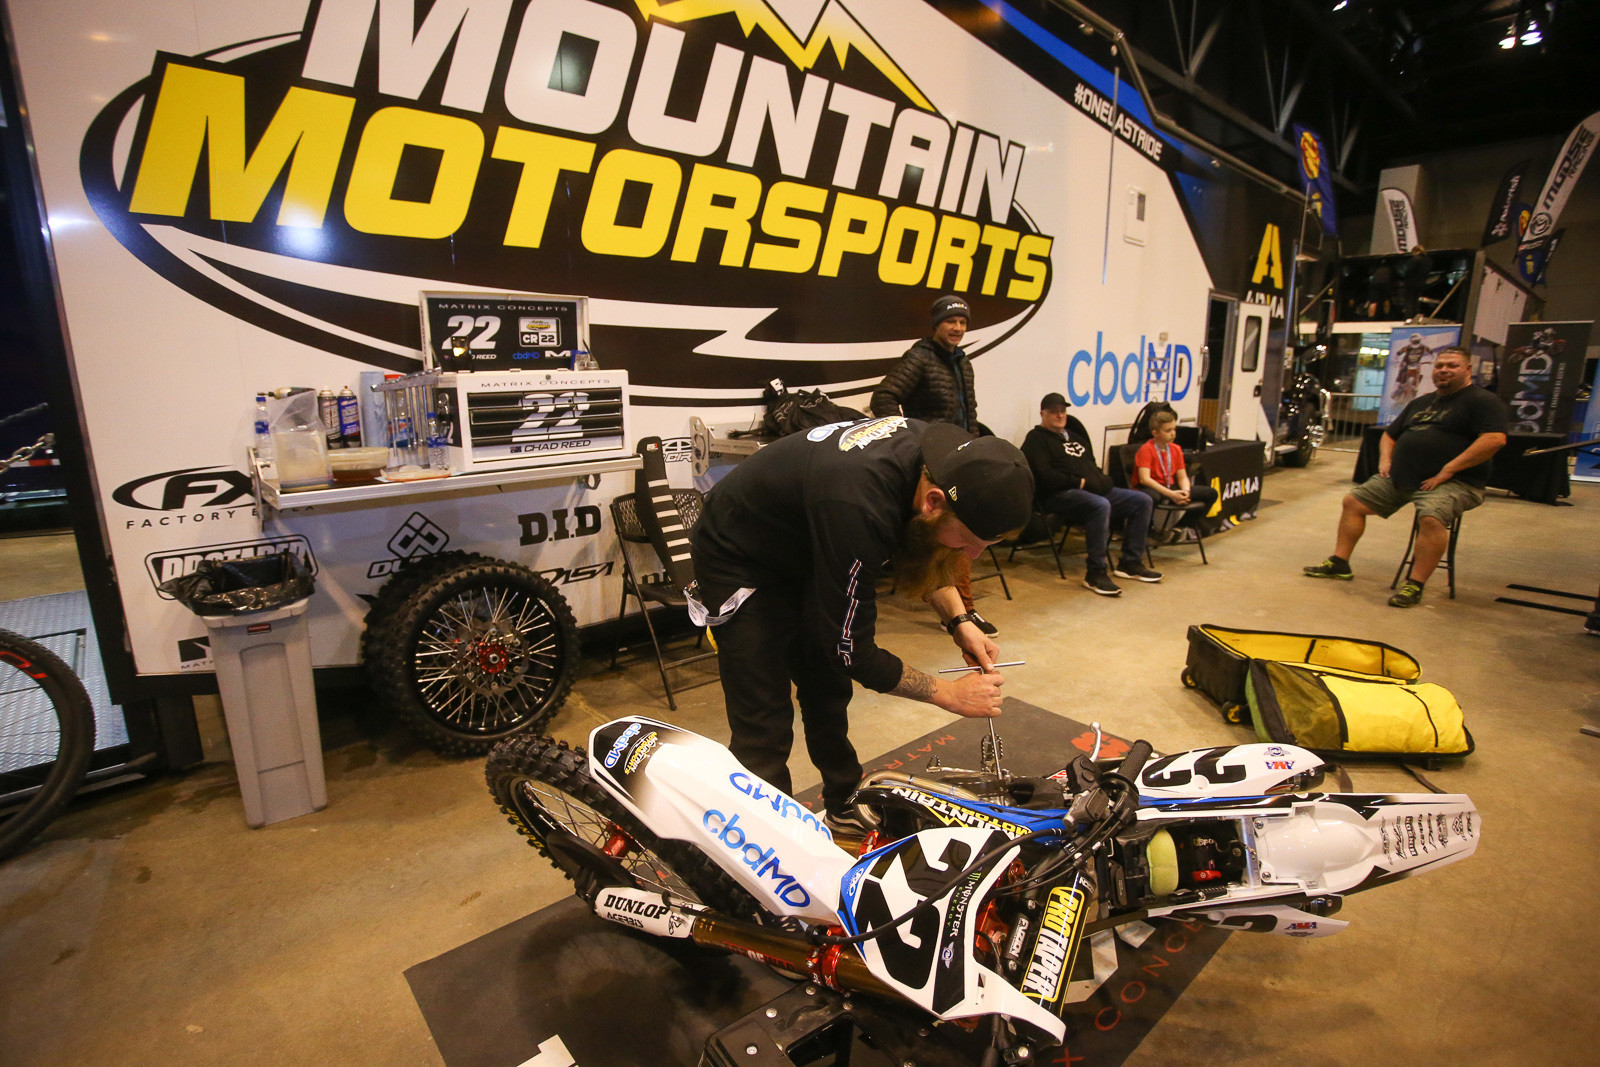 If you want in on some first class heckling and smack-talking, stop by the Mountain Motorsports rig on Friday afternoon before a race.